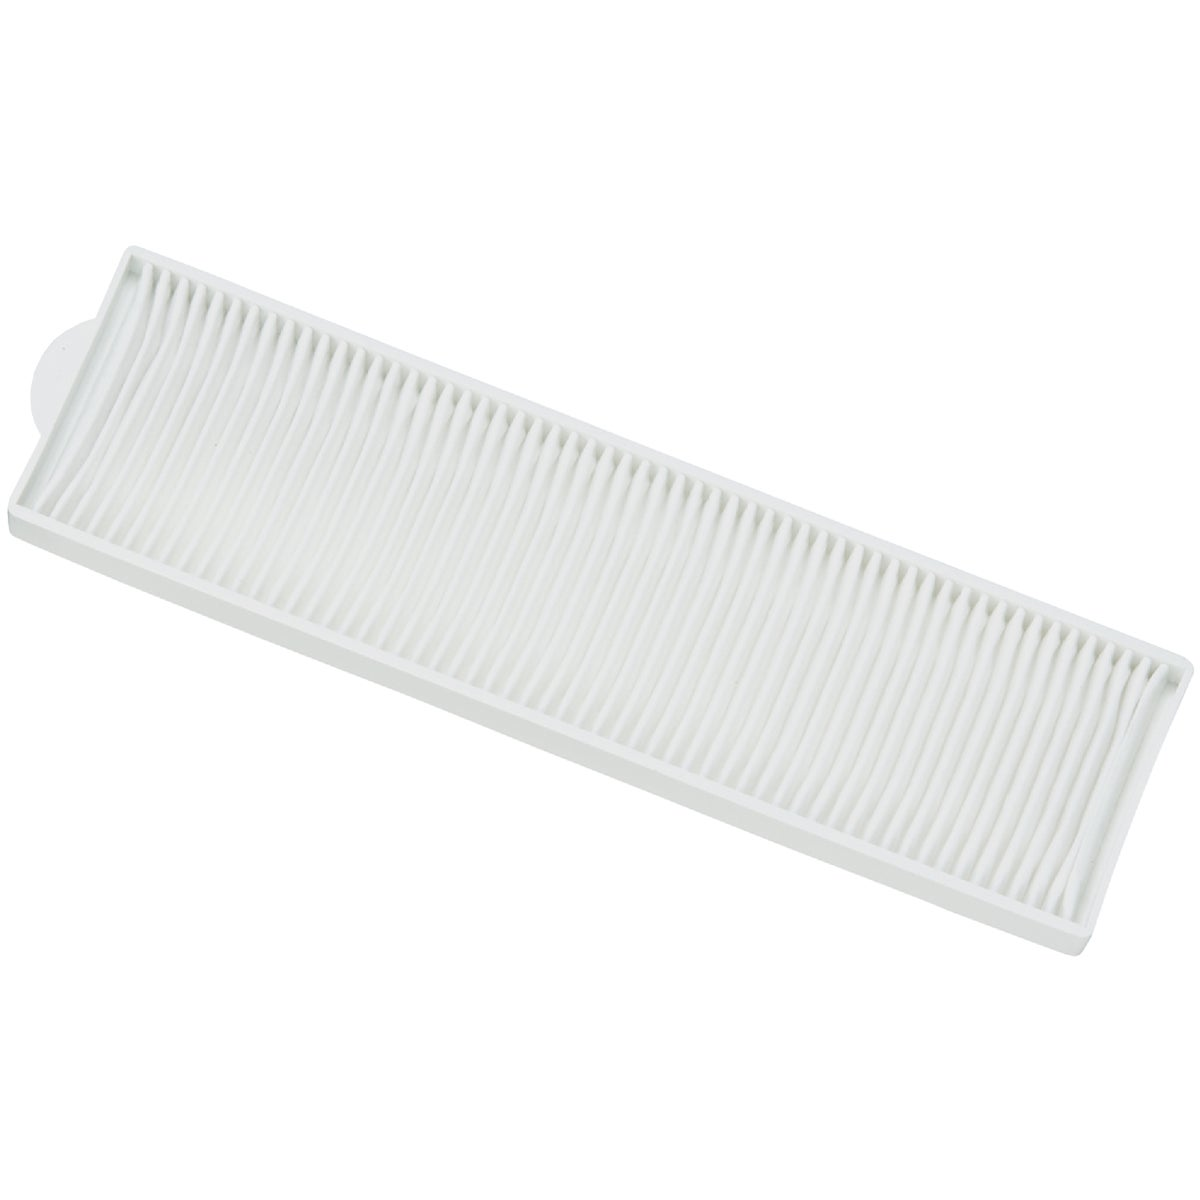 NO 8 VAC CLEANER FILTER - 3091 by Bissell Homecare Int